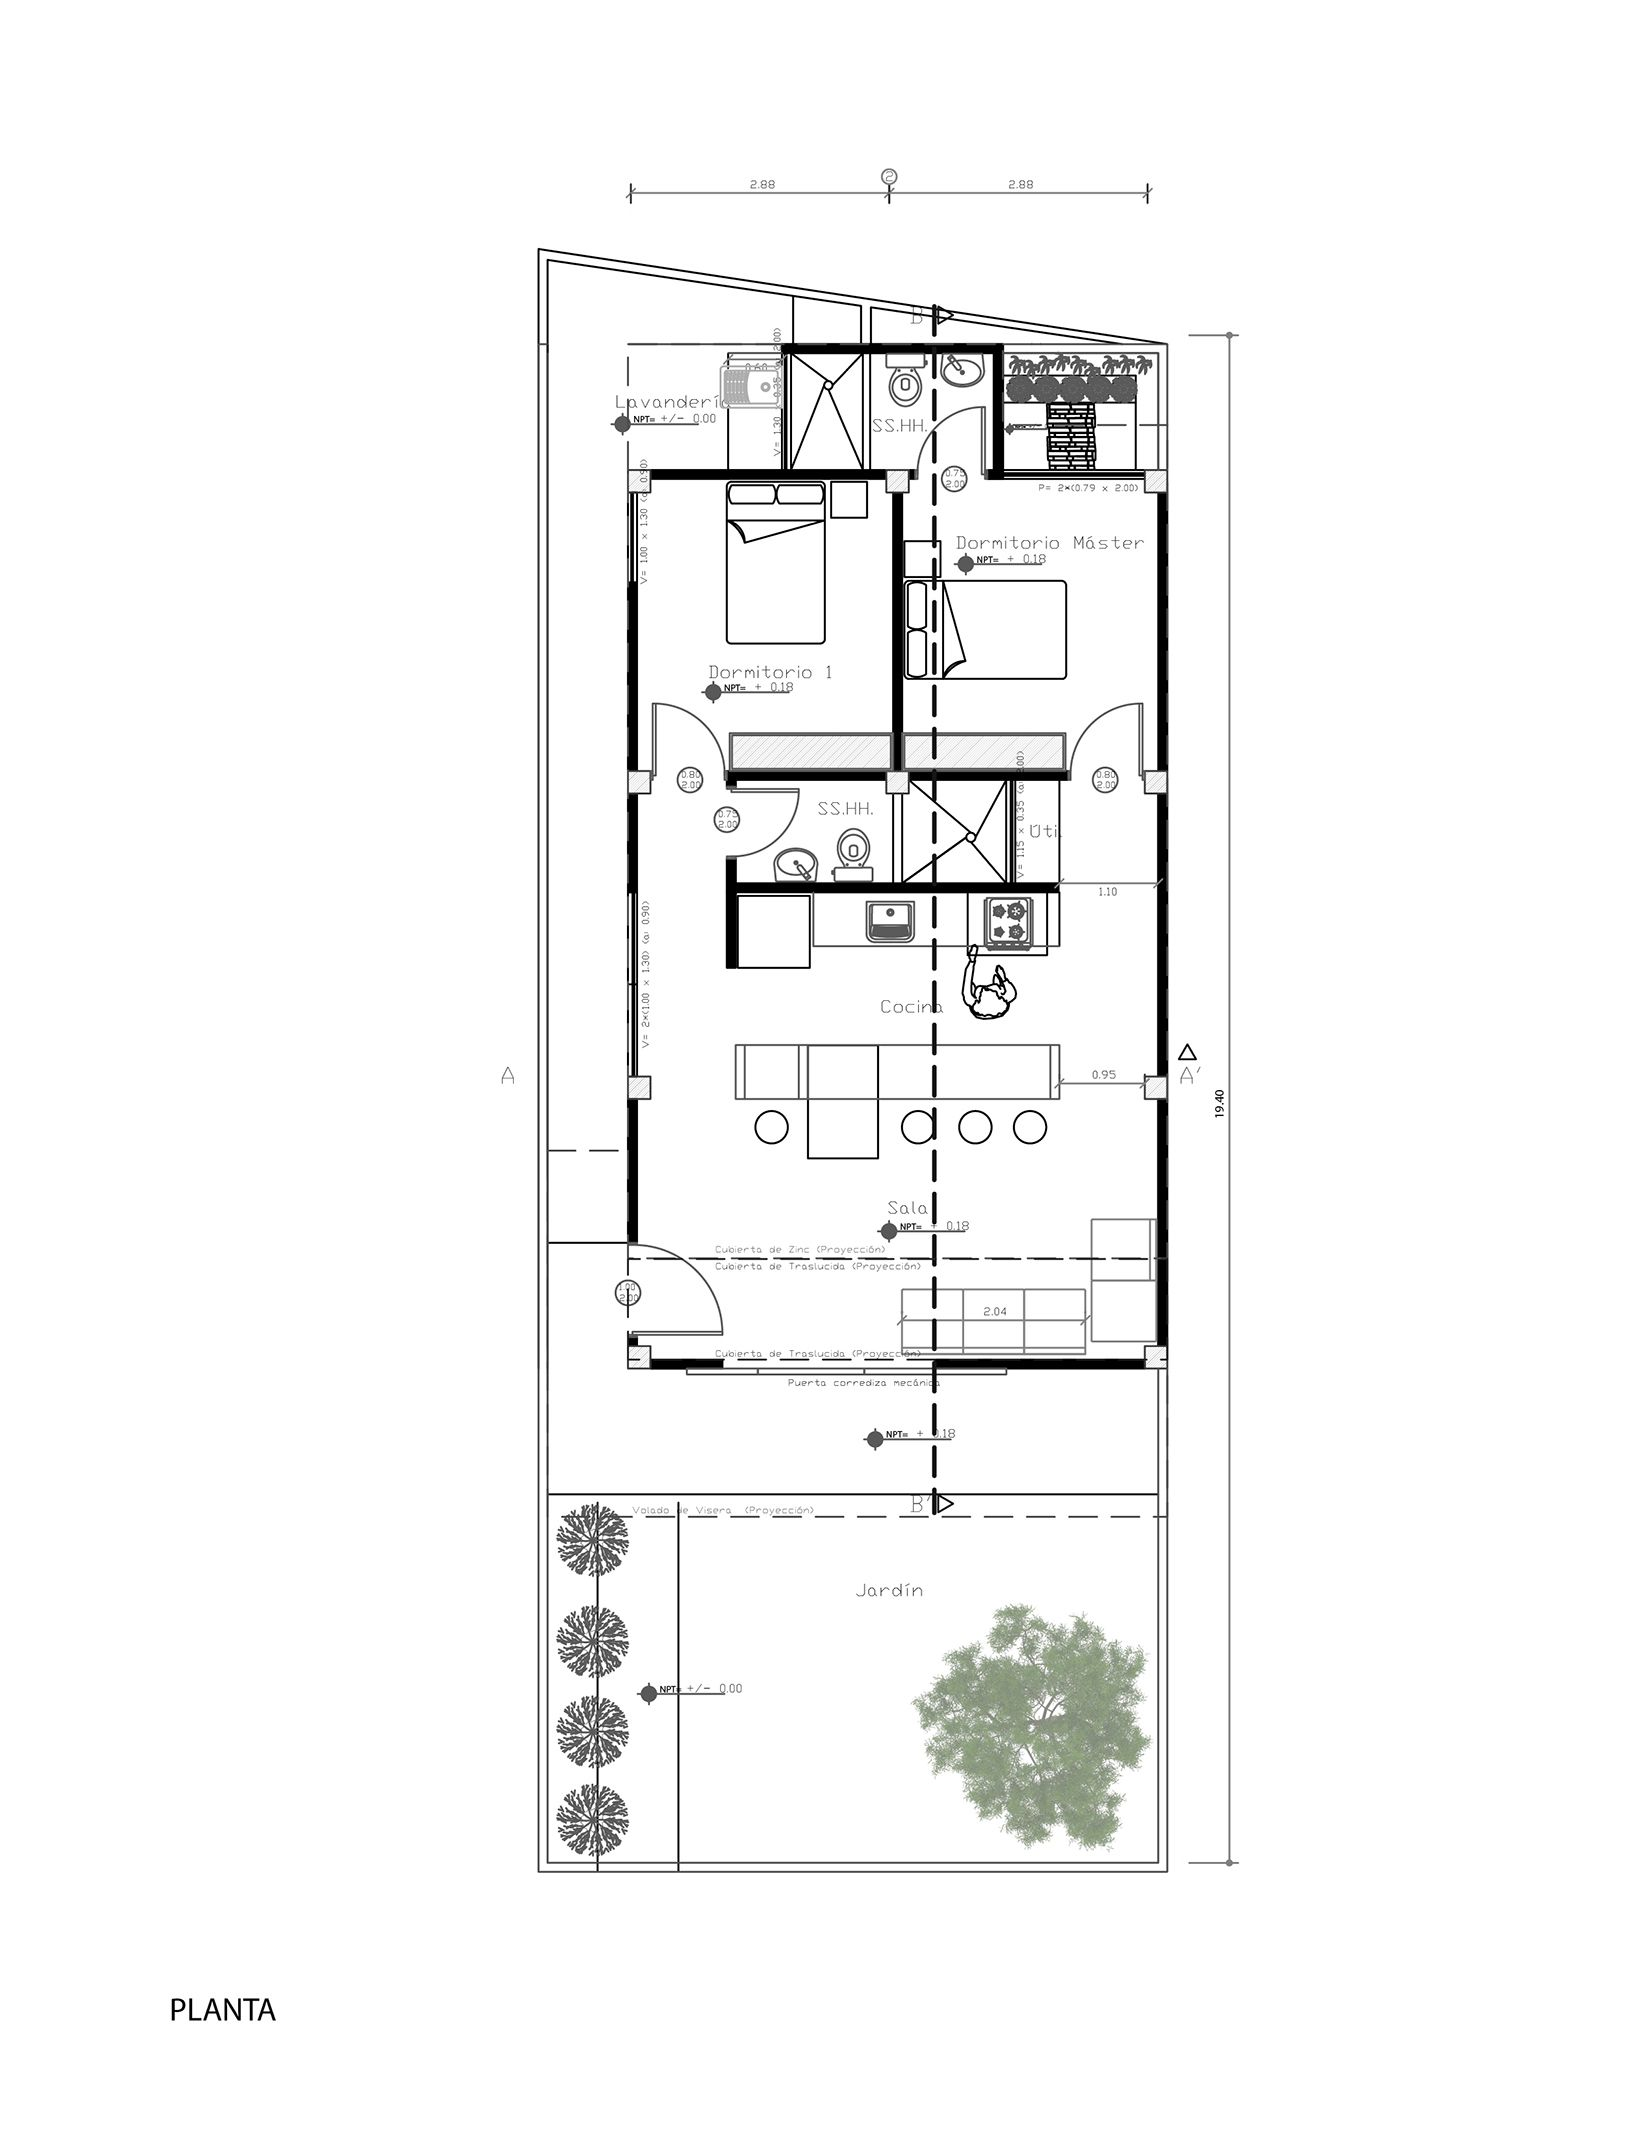 Gallery Of House For Someone Like Me Natura Futura Arquitectura 20 Social Housing How To Plan Social Housing Architecture